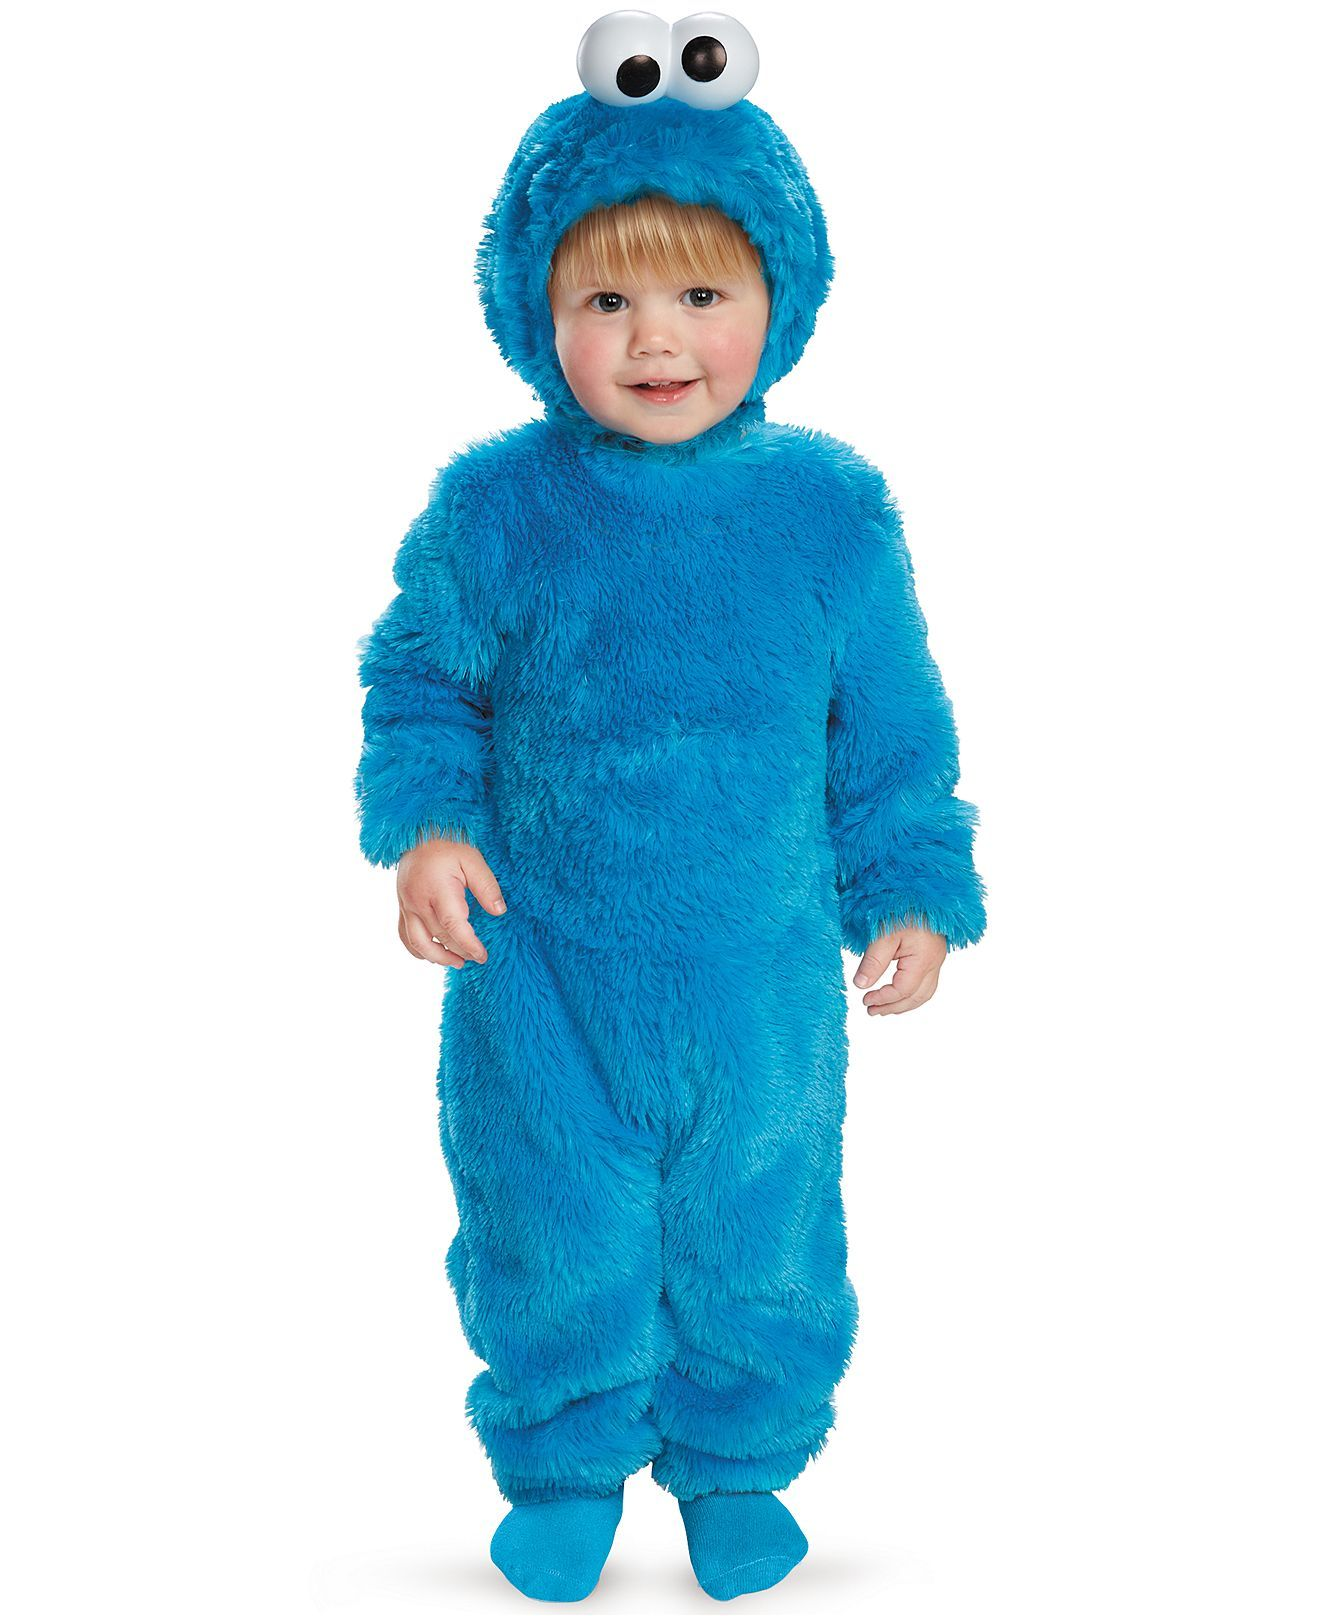 Disguise Kids Costume Little Boys Or Little Girls Light Up Cookie Monst Cookie Monster Costume Cookie Monster Costume Toddler Baby Halloween Costumes For Boys